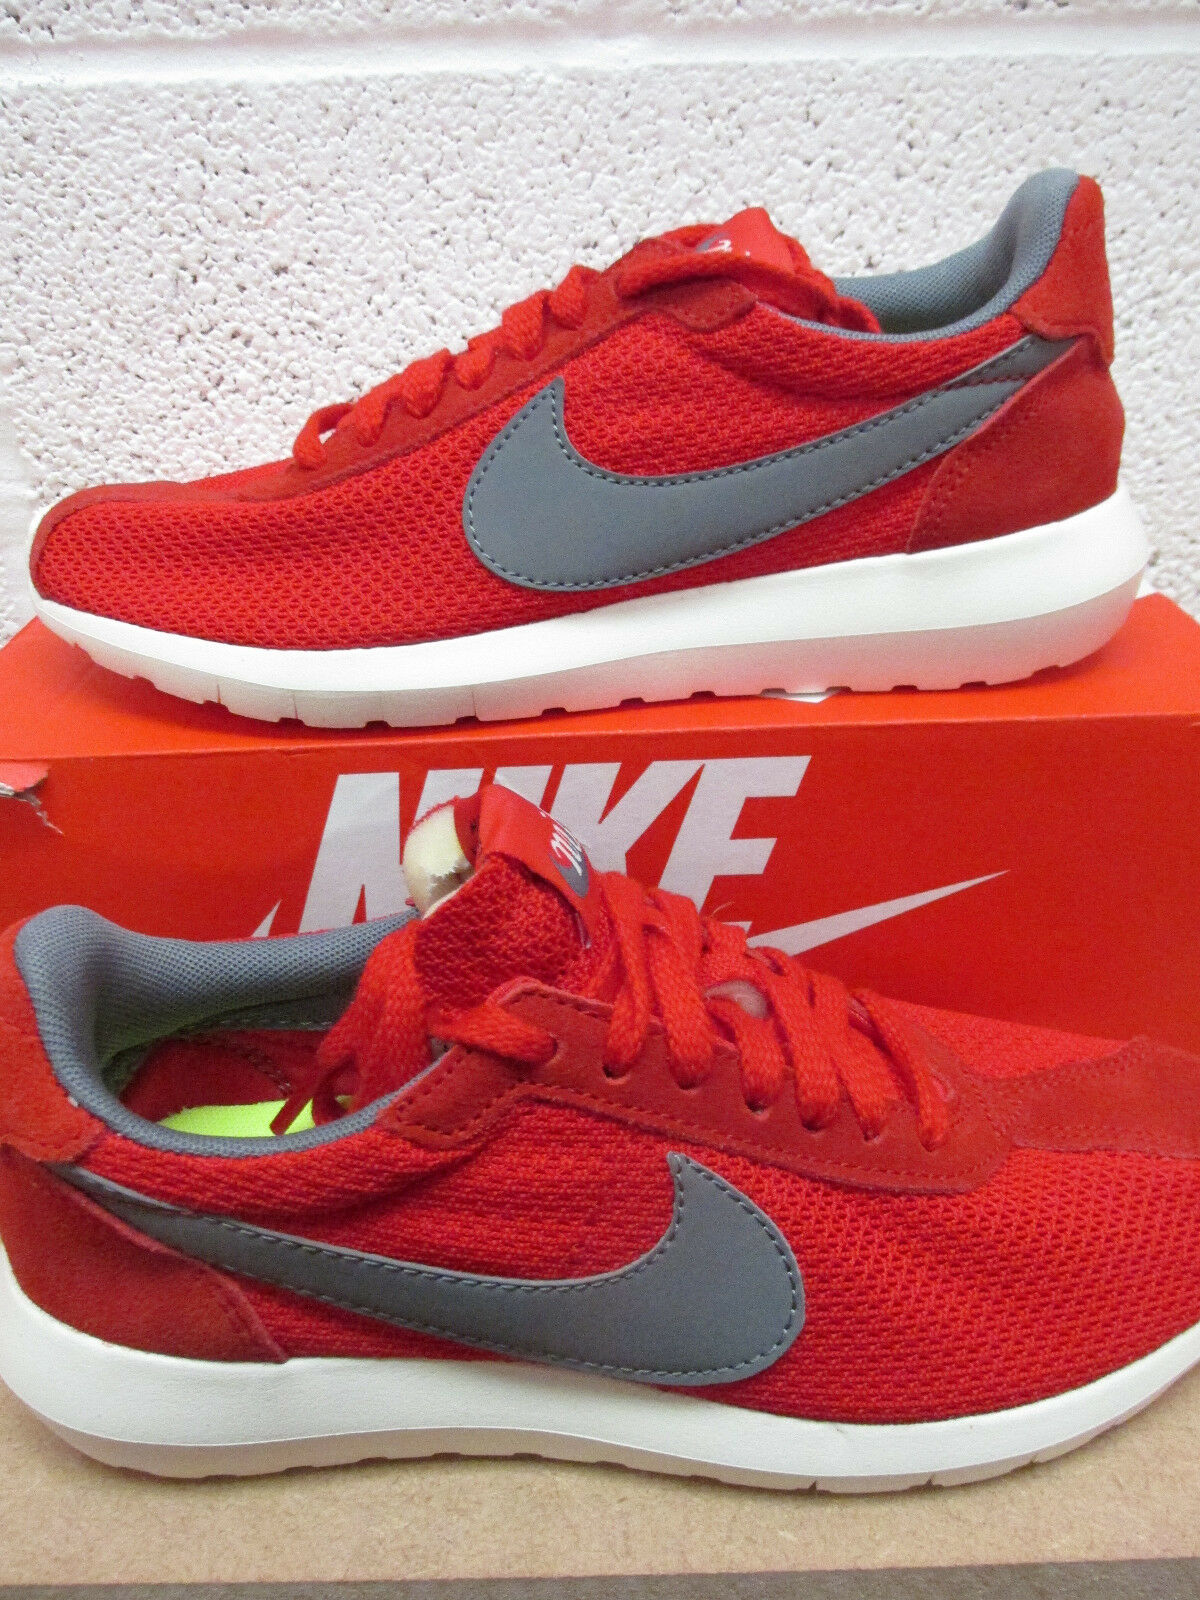 nike womens roshe LD-1000 trainers 819843 600 sneakers shoes